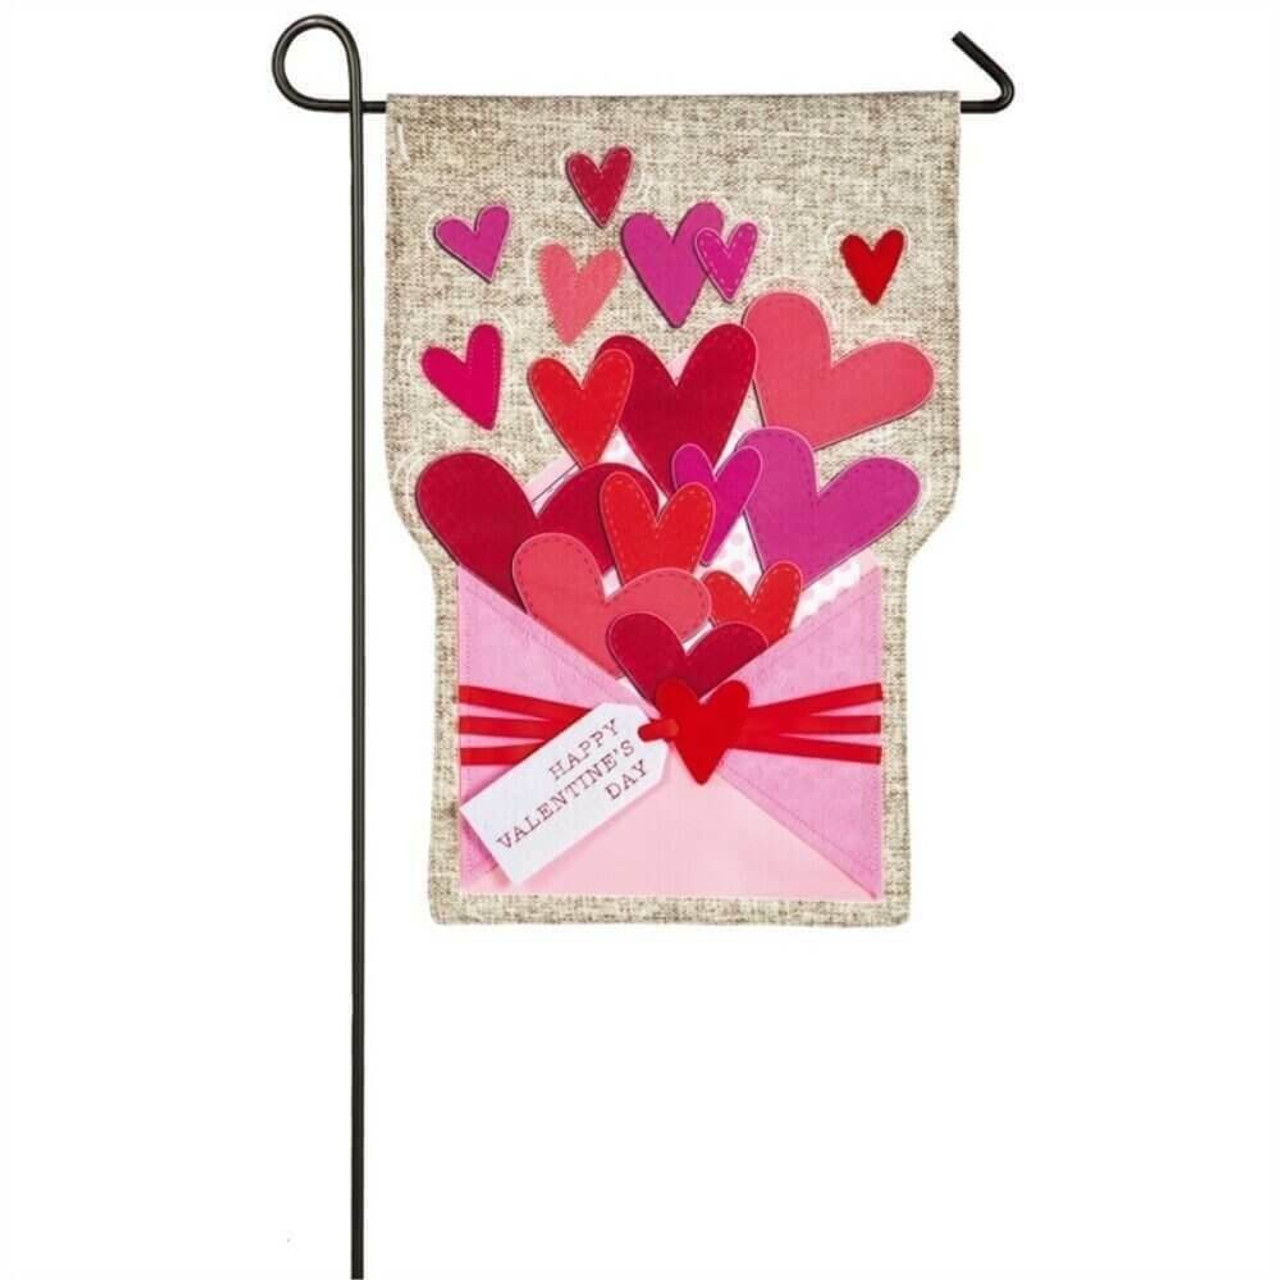 """This garden flag is made of a beige linen material. At the bottom of the flag is a light pink envelope with a gift tag that reads """"HAPPY VALENTINE'S DAY."""" Coming out of the envelope are hearts of different sizes and colors. The color of the hearts are red, light pink, dark pink, and magenta."""